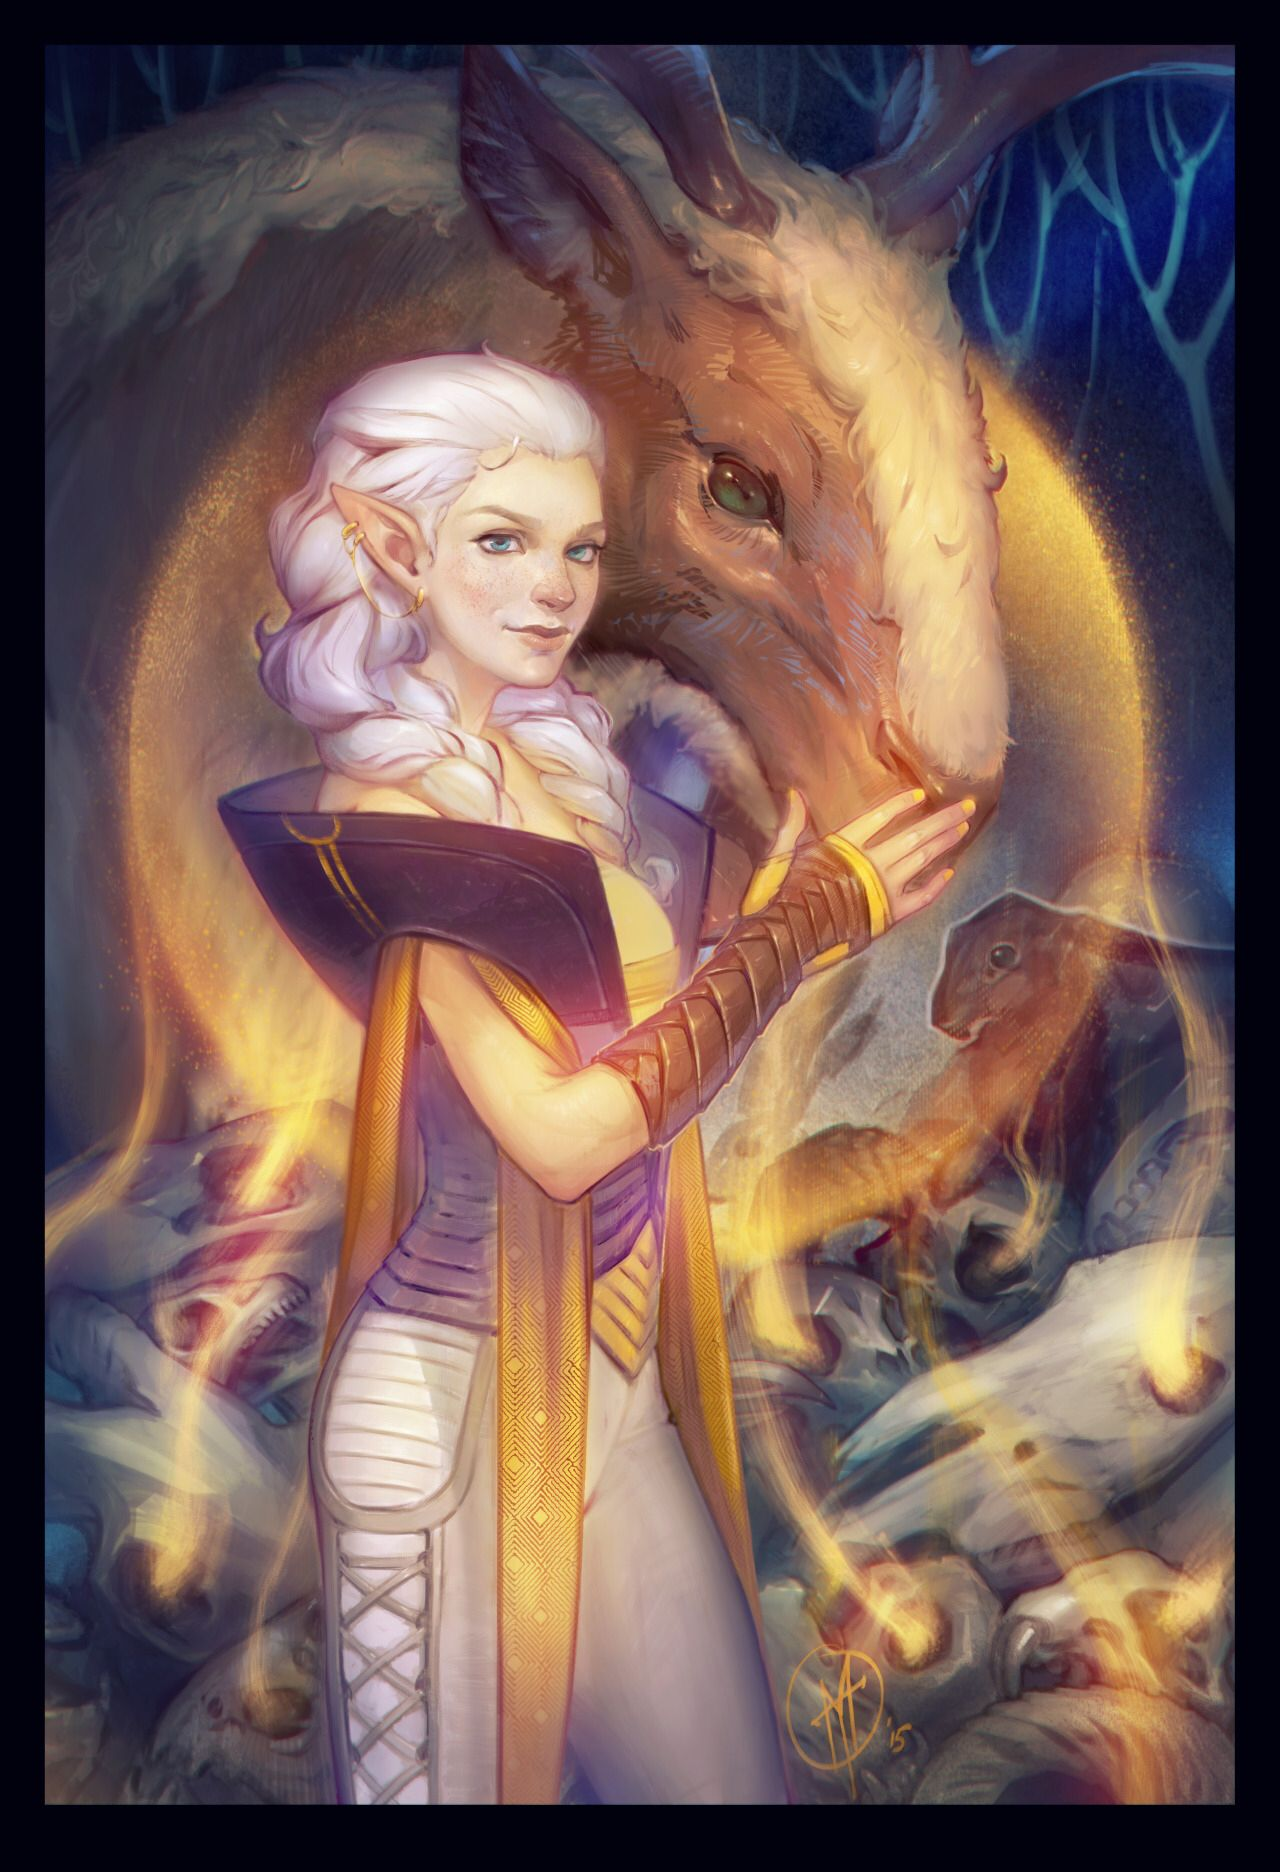 """Ghilan'nain. Mother of the halla in elven pantheon of Dragon Age universe. """"They say Ghilan'nain was one of the People, in the days before Arlathan, and the chosen of Andruil the Huntress. She was very beautiful — with hair of snowy white — and as graceful as a gazelle. She kept always to Andruil's Ways, and Andruil favored her above all others."""""""